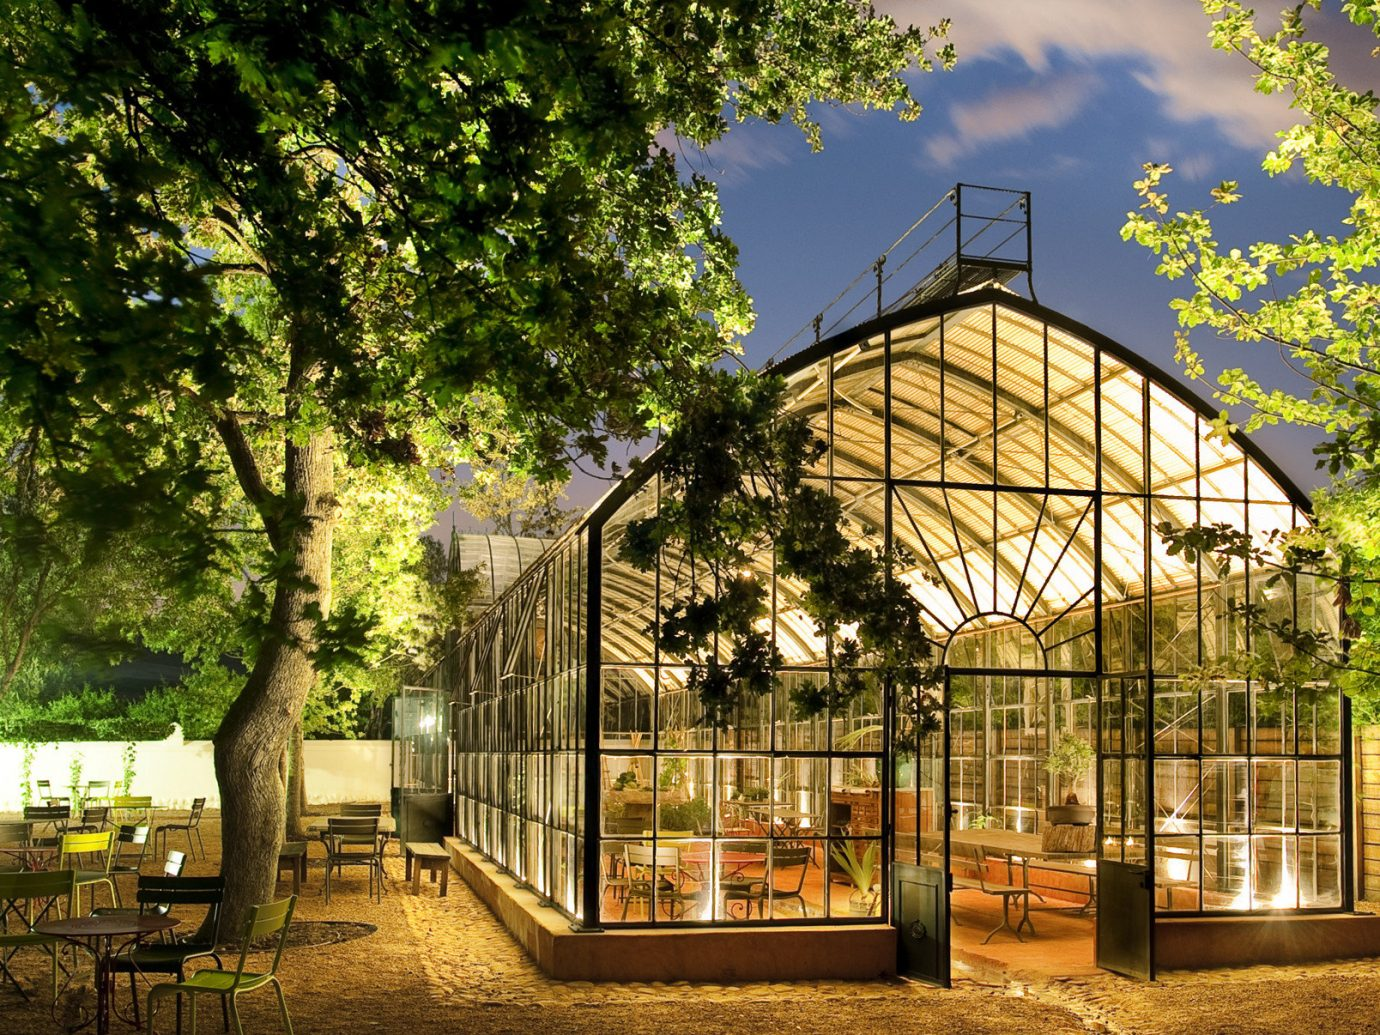 Babylonstoren; tree outdoor plant greenhouse Architecture outdoor structure home house real estate Garden estate park landscape cottage facade orangery area